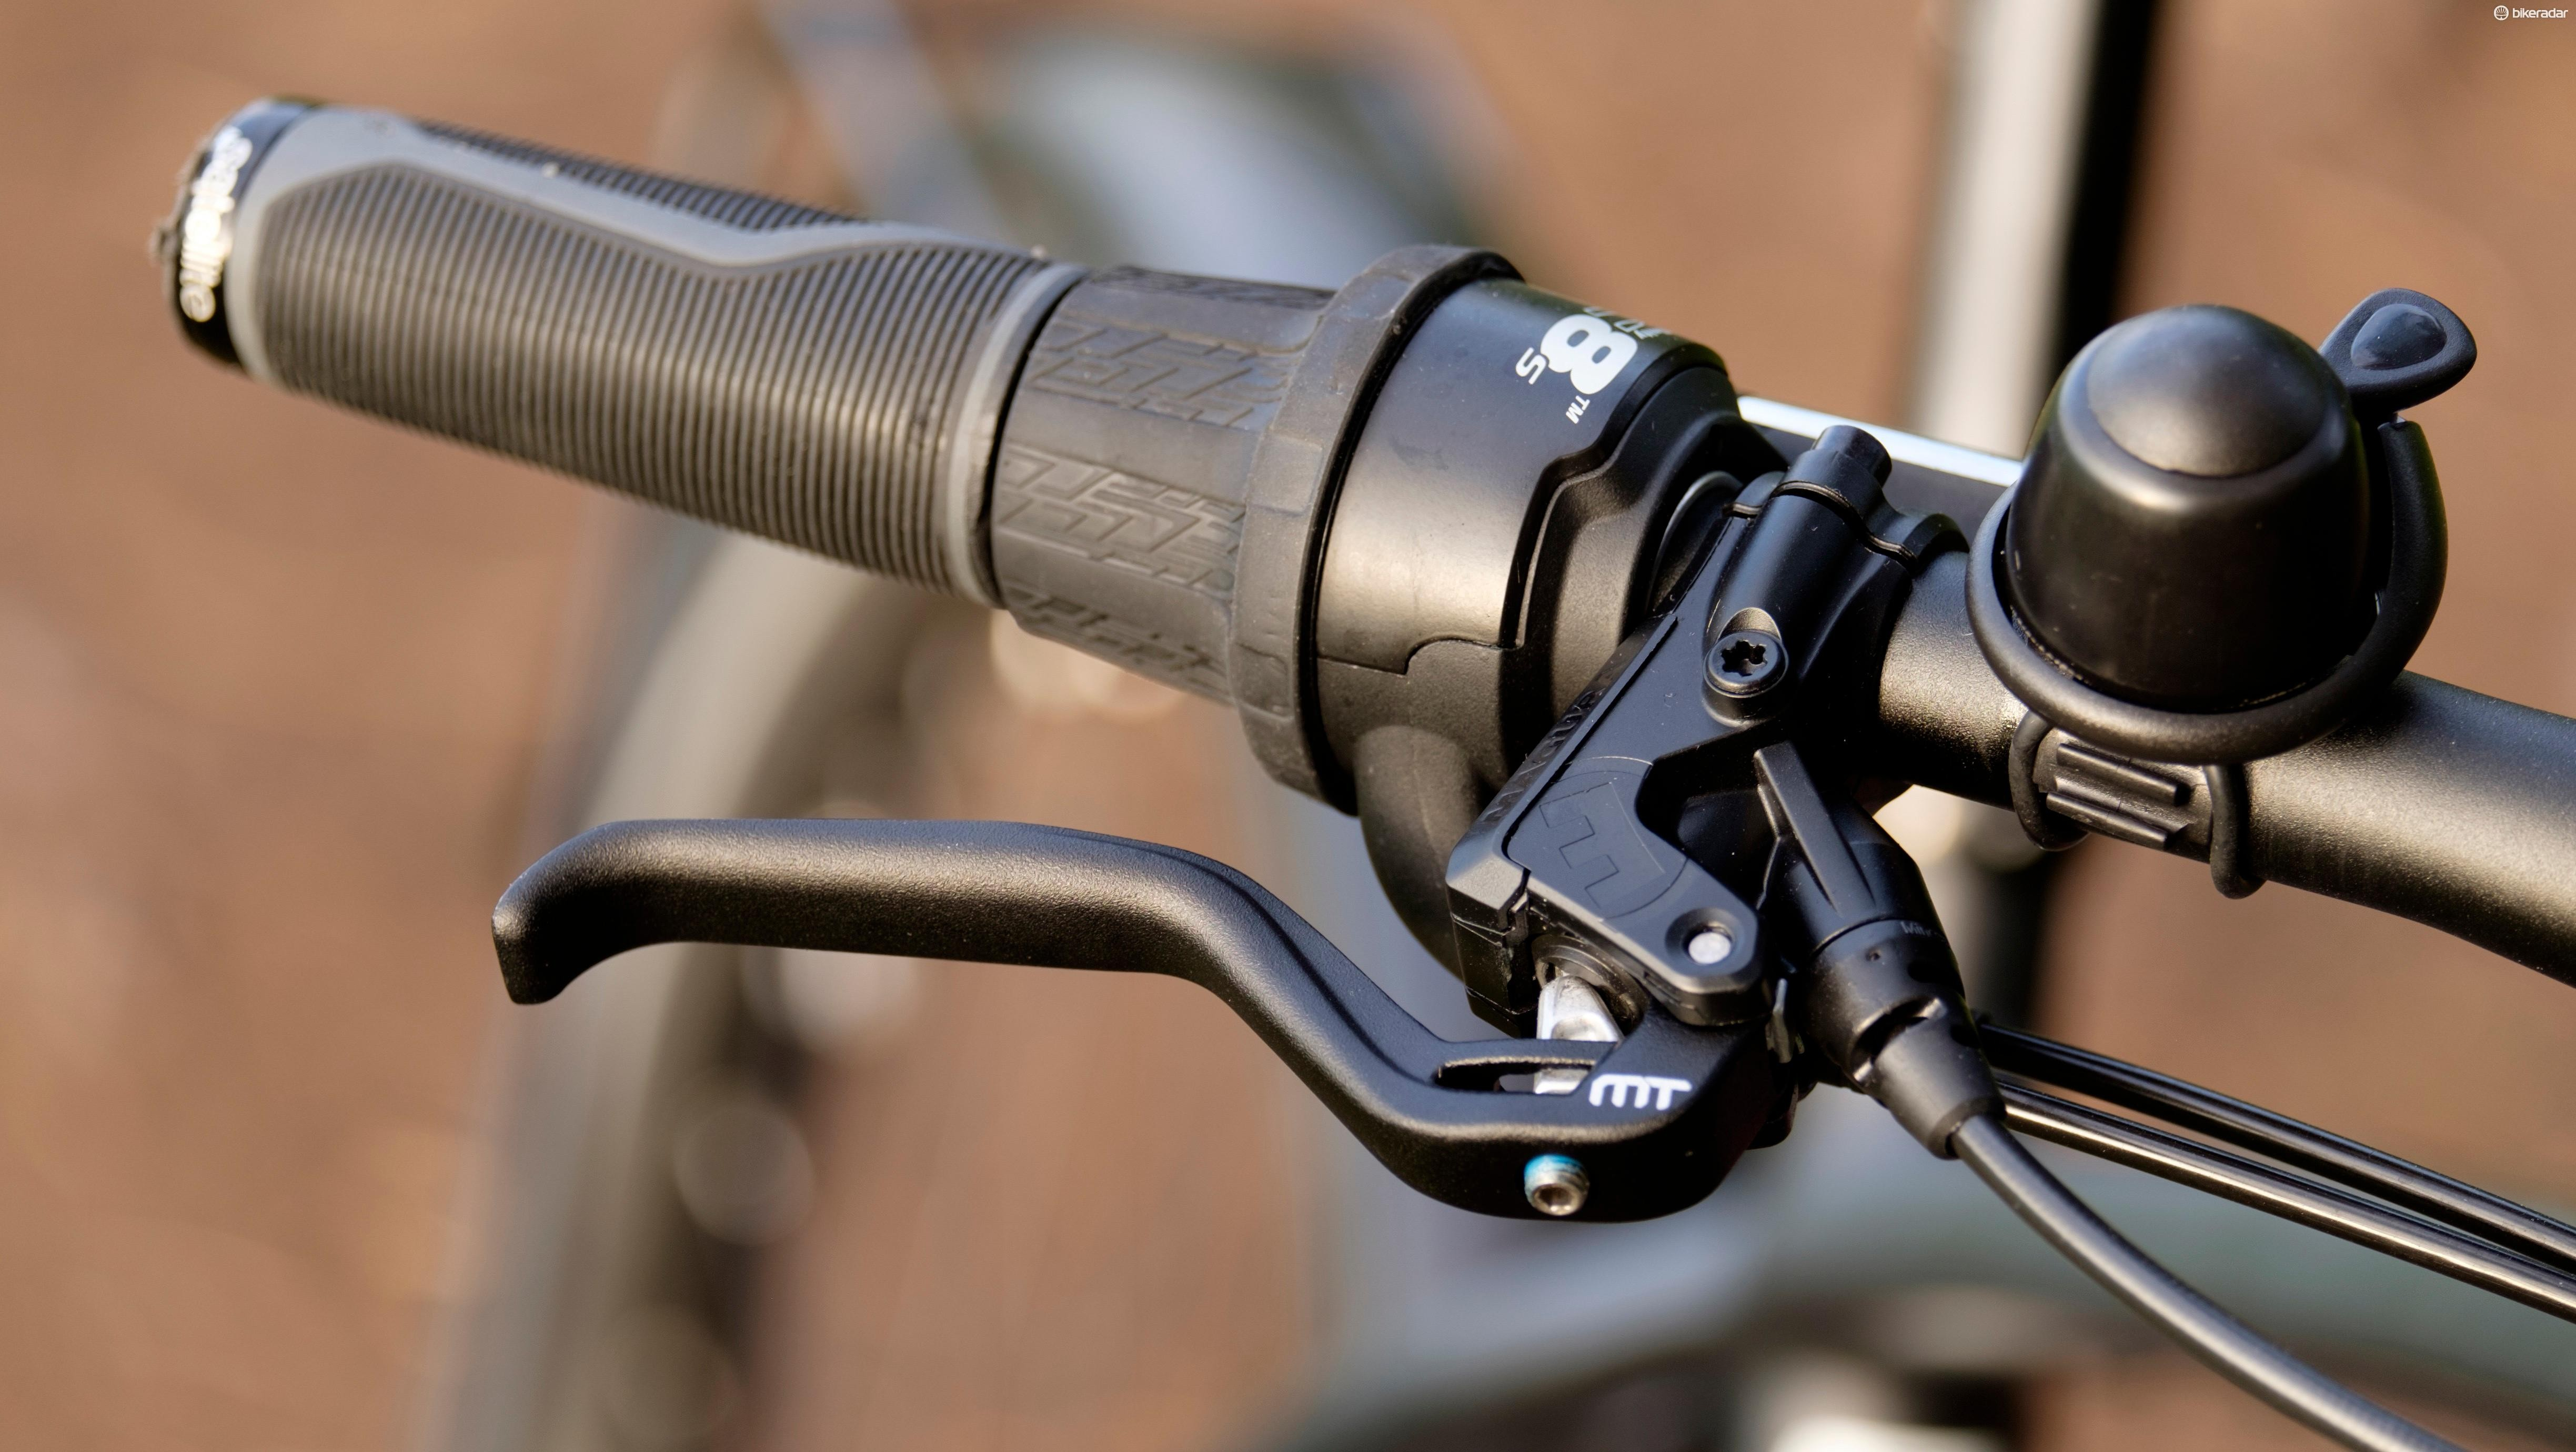 Maguar's MT5/4 brakes provide adequate stopping power